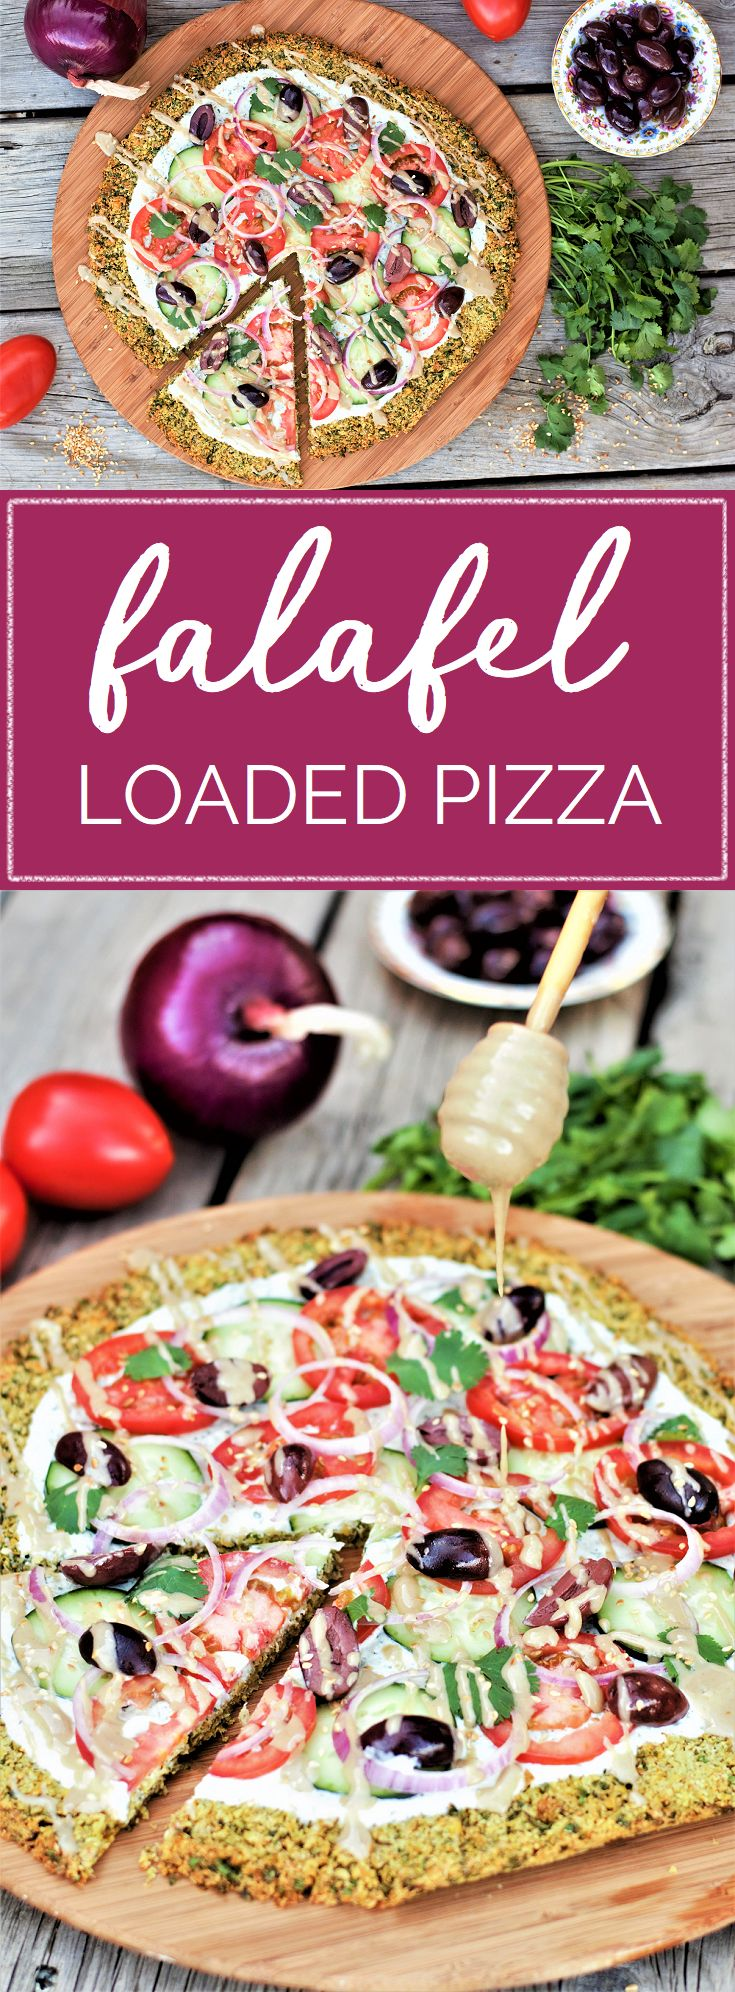 Everyone's favorite Middle Eastern sandwich on a pizza! Crunchy, bright, fresh veggies over creamy tzatziki on a crispy golden falafel crust is healthy eating at its very best: high protein & fiber, low carb, gluten free, vegetarian, zero added sugar, and downright delicious all around. #vegetarian #vegan #meatless #glutenfree #lowcarb #mediterranean #healthyeating #recipe | mountaincravings.com